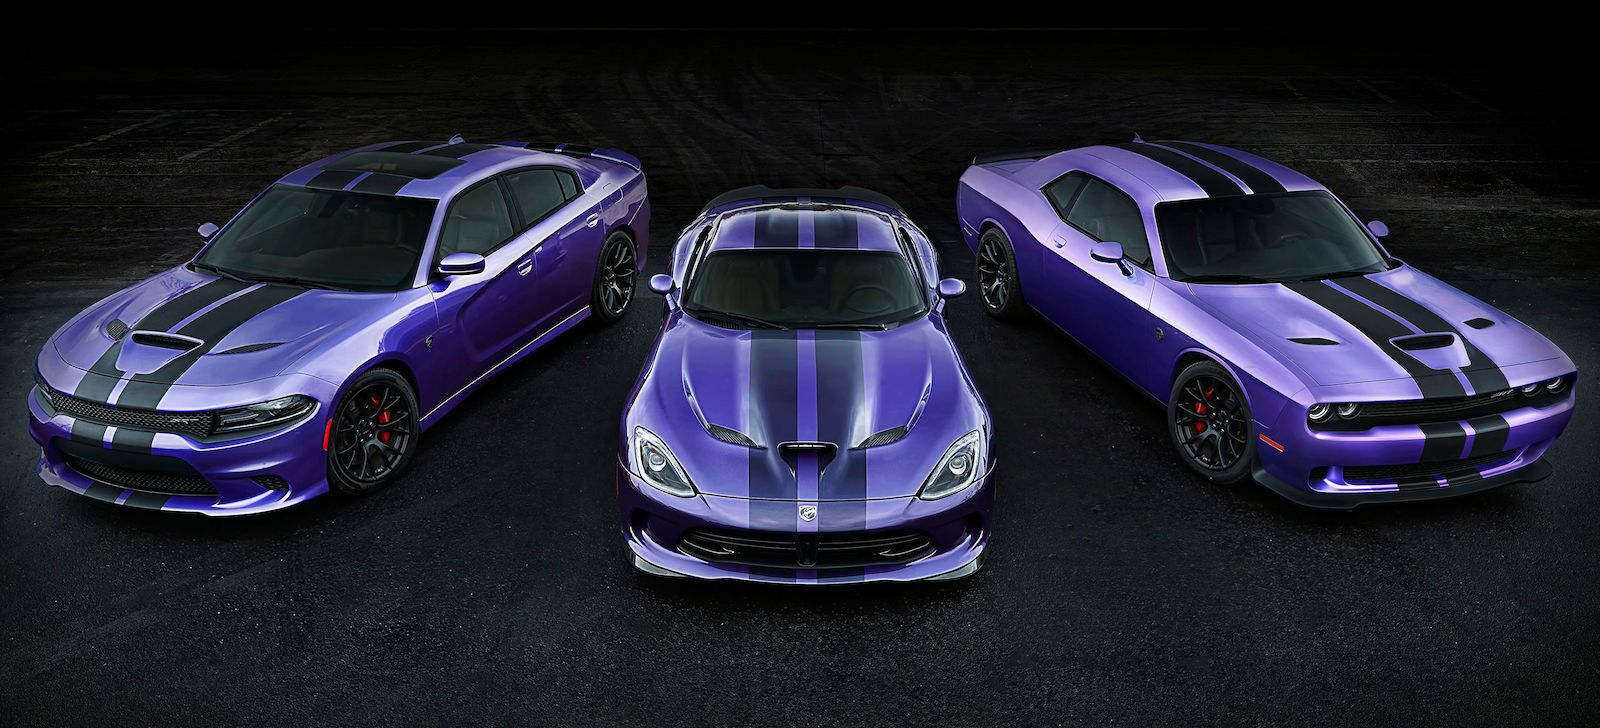 2016 Dodge Challenger vs 2016 Dodge Charger; Which One is for You?